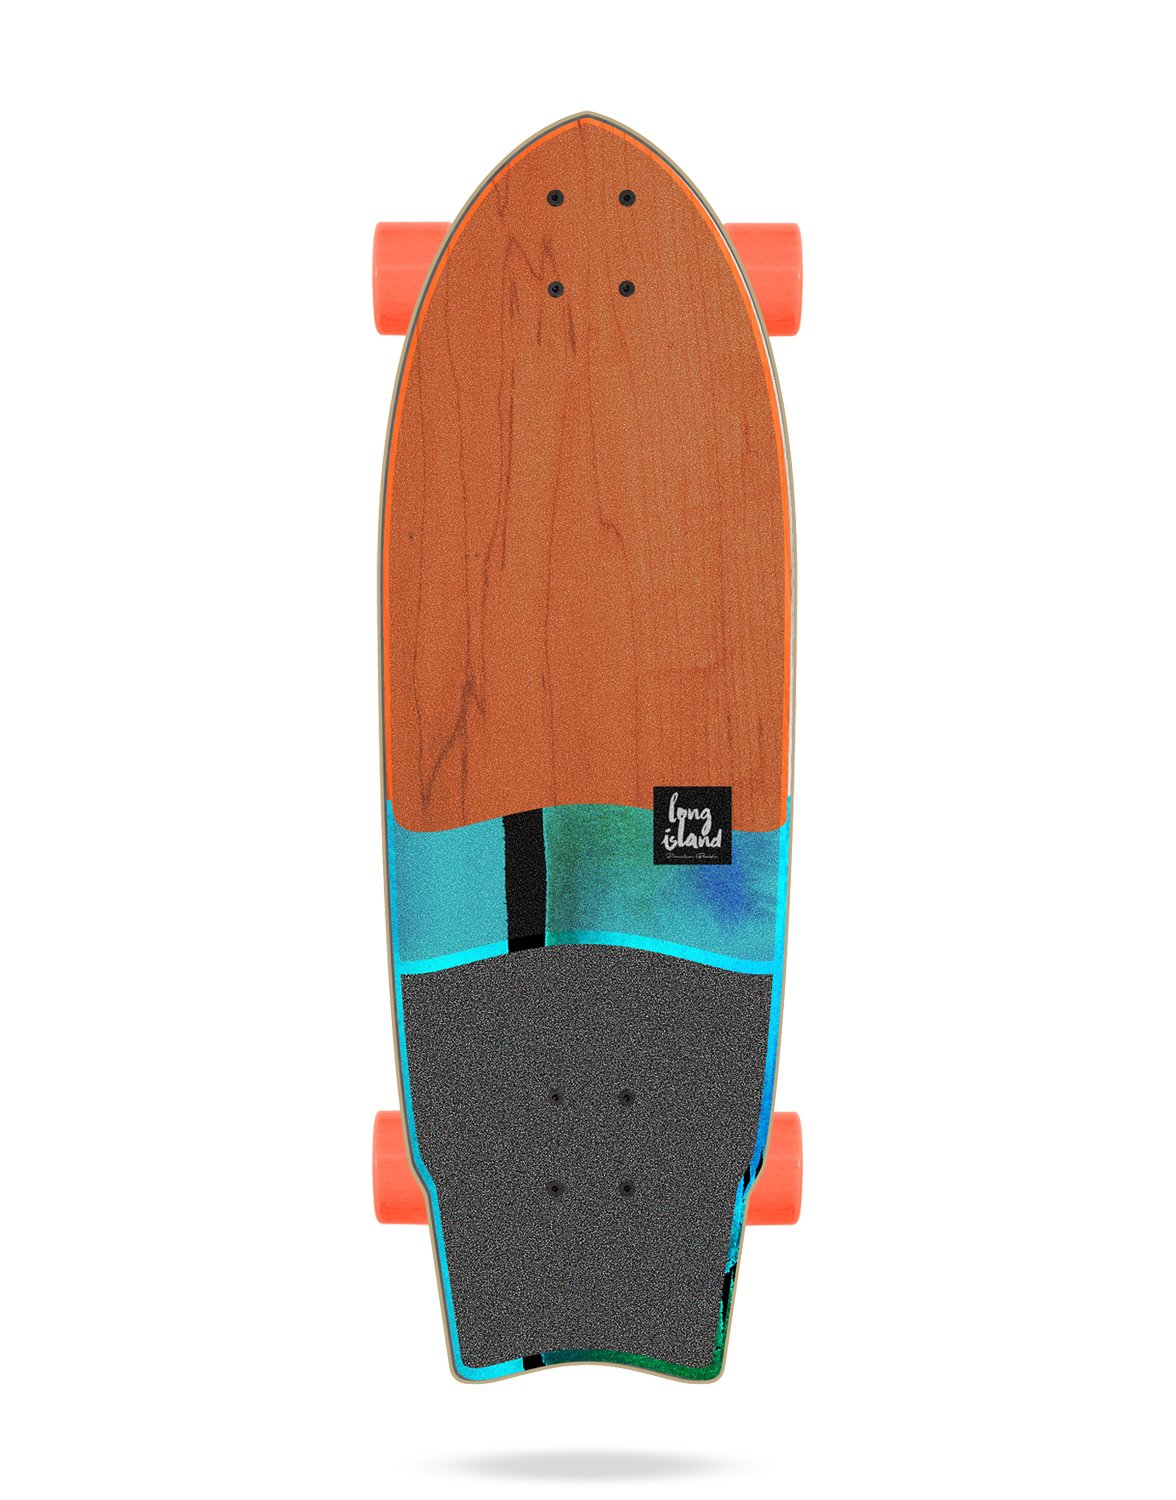 Long Island Recife 31 Surfskate Completos, Unisex Adulto, Talla Única: Amazon.es: Deportes y aire libre